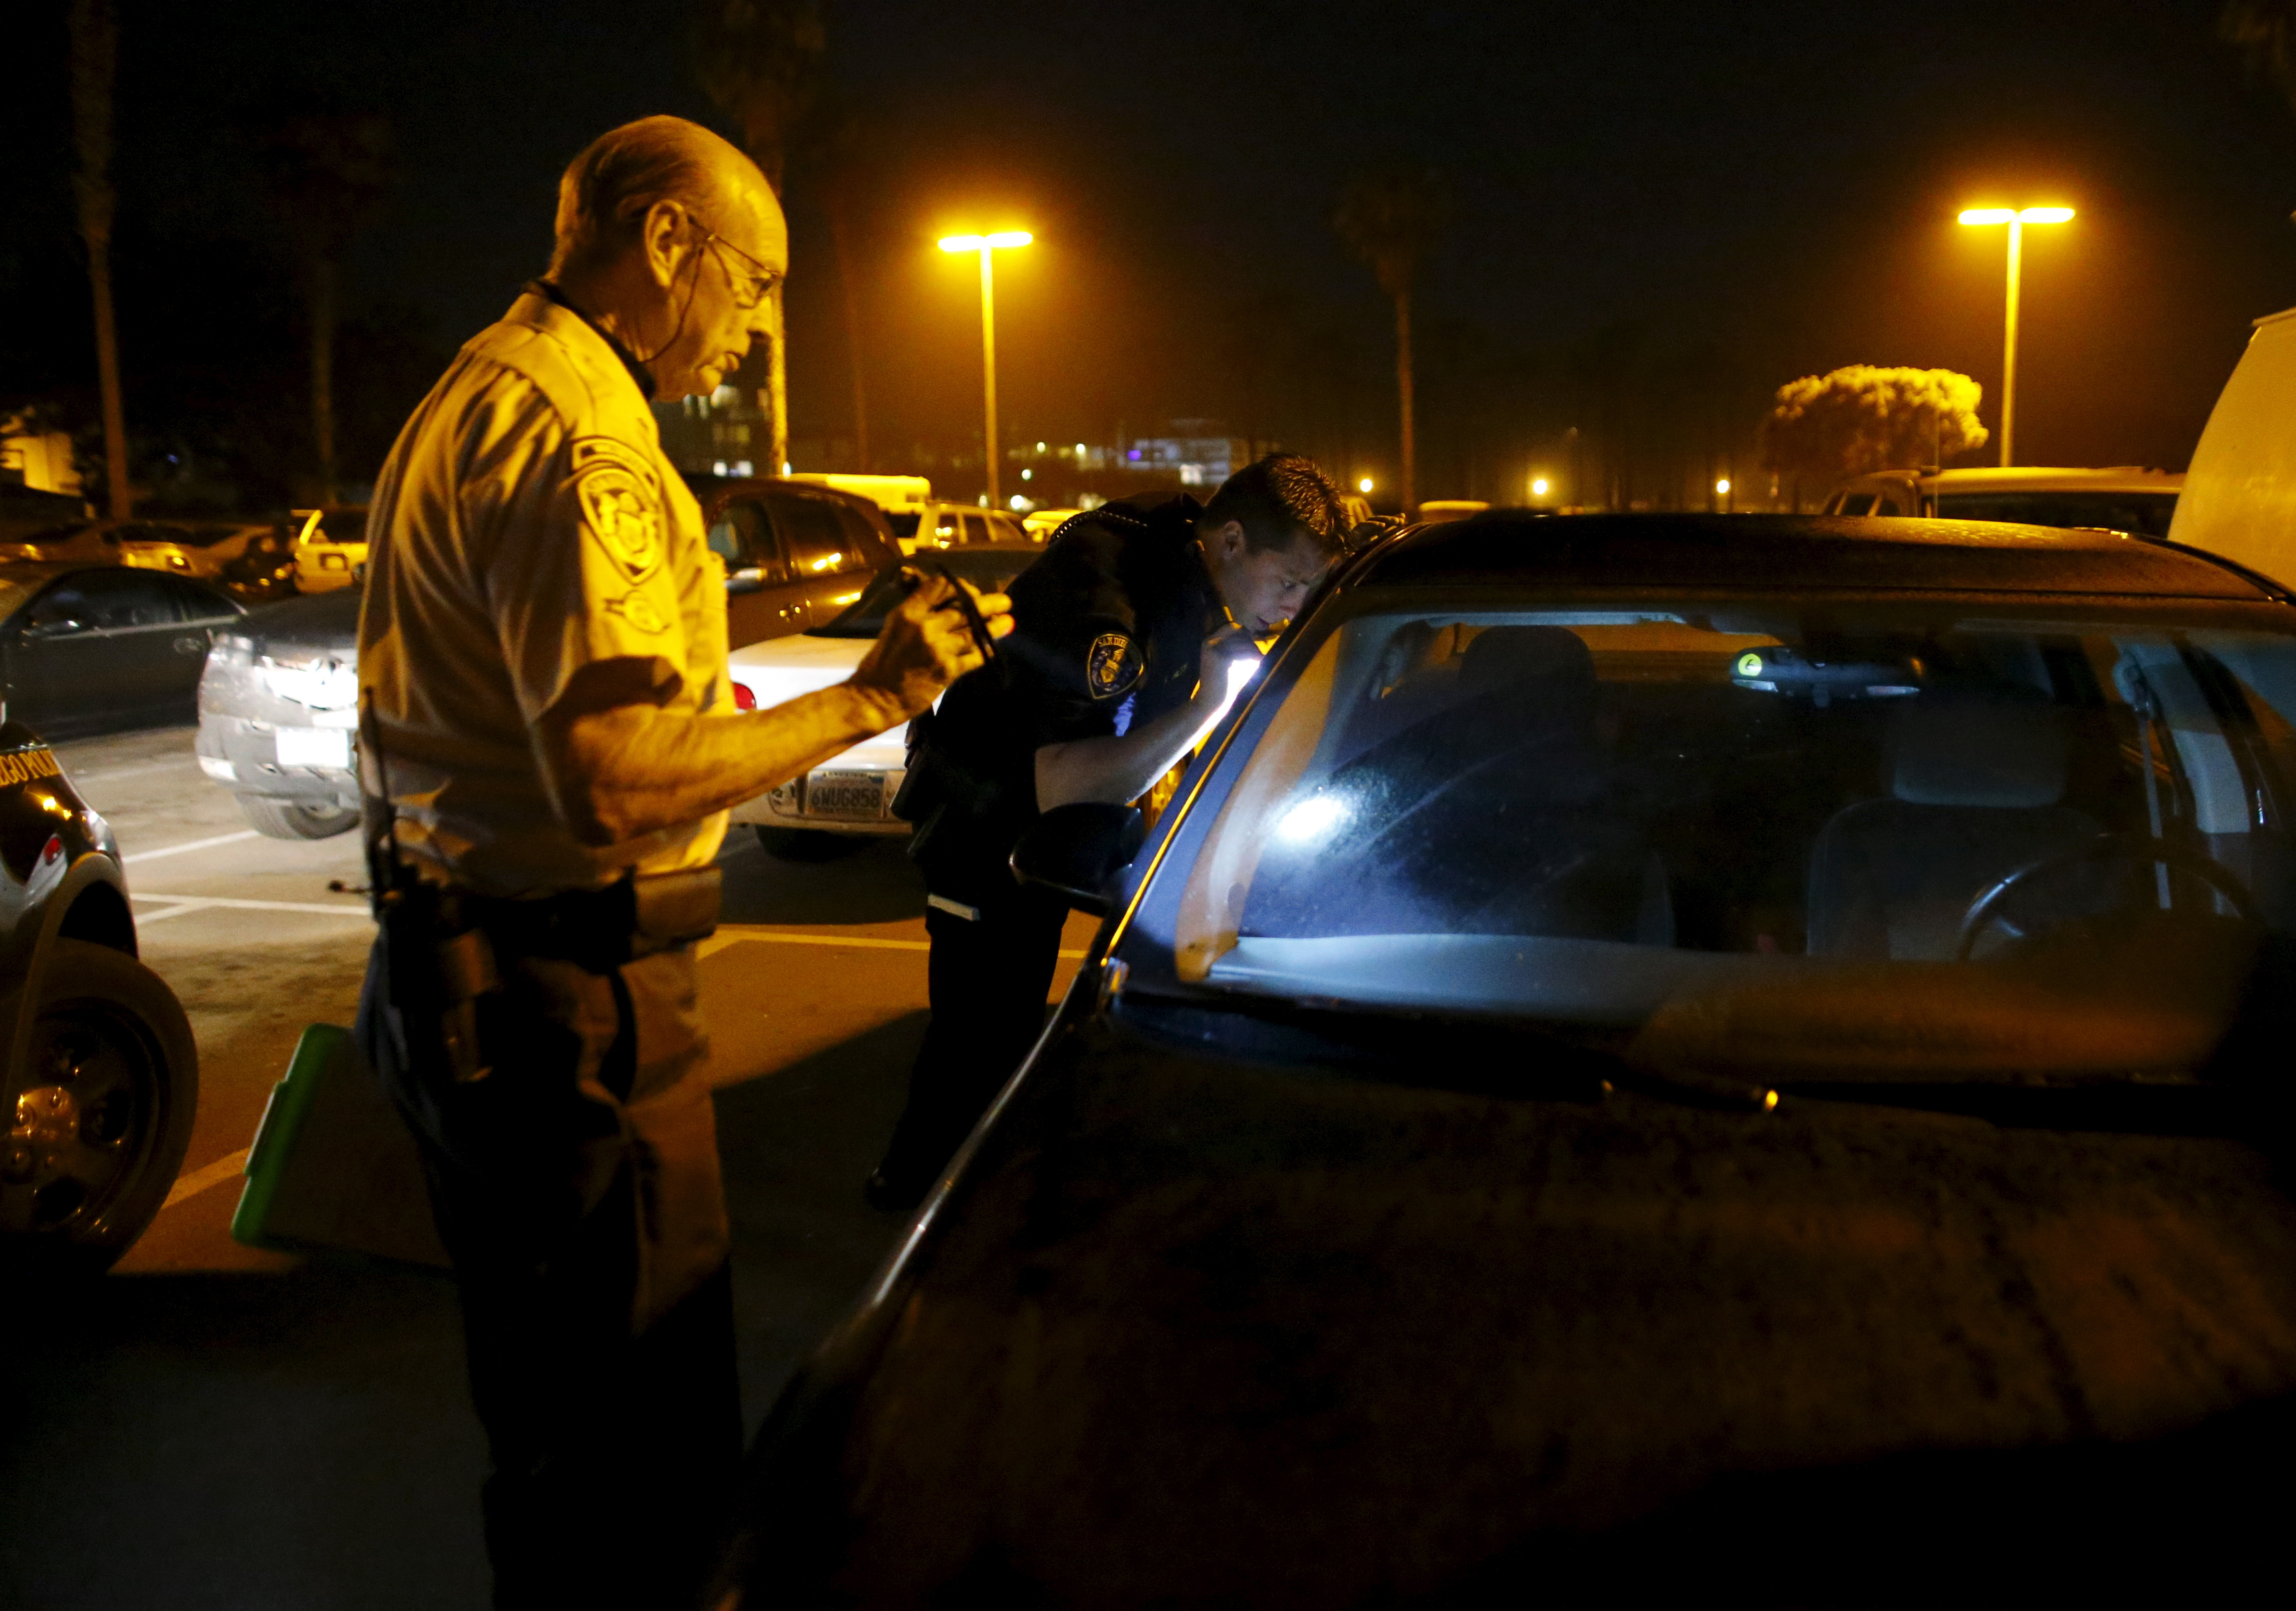 RSVP member Henry Miller (L) is assisted by San Diego Police officer Joe Hilton after Miller found a stolen vehicle on his night patrol with partner Steve Rubin in San Diego, California on April 30, 2015. Photo by Mike Blake/Reuters